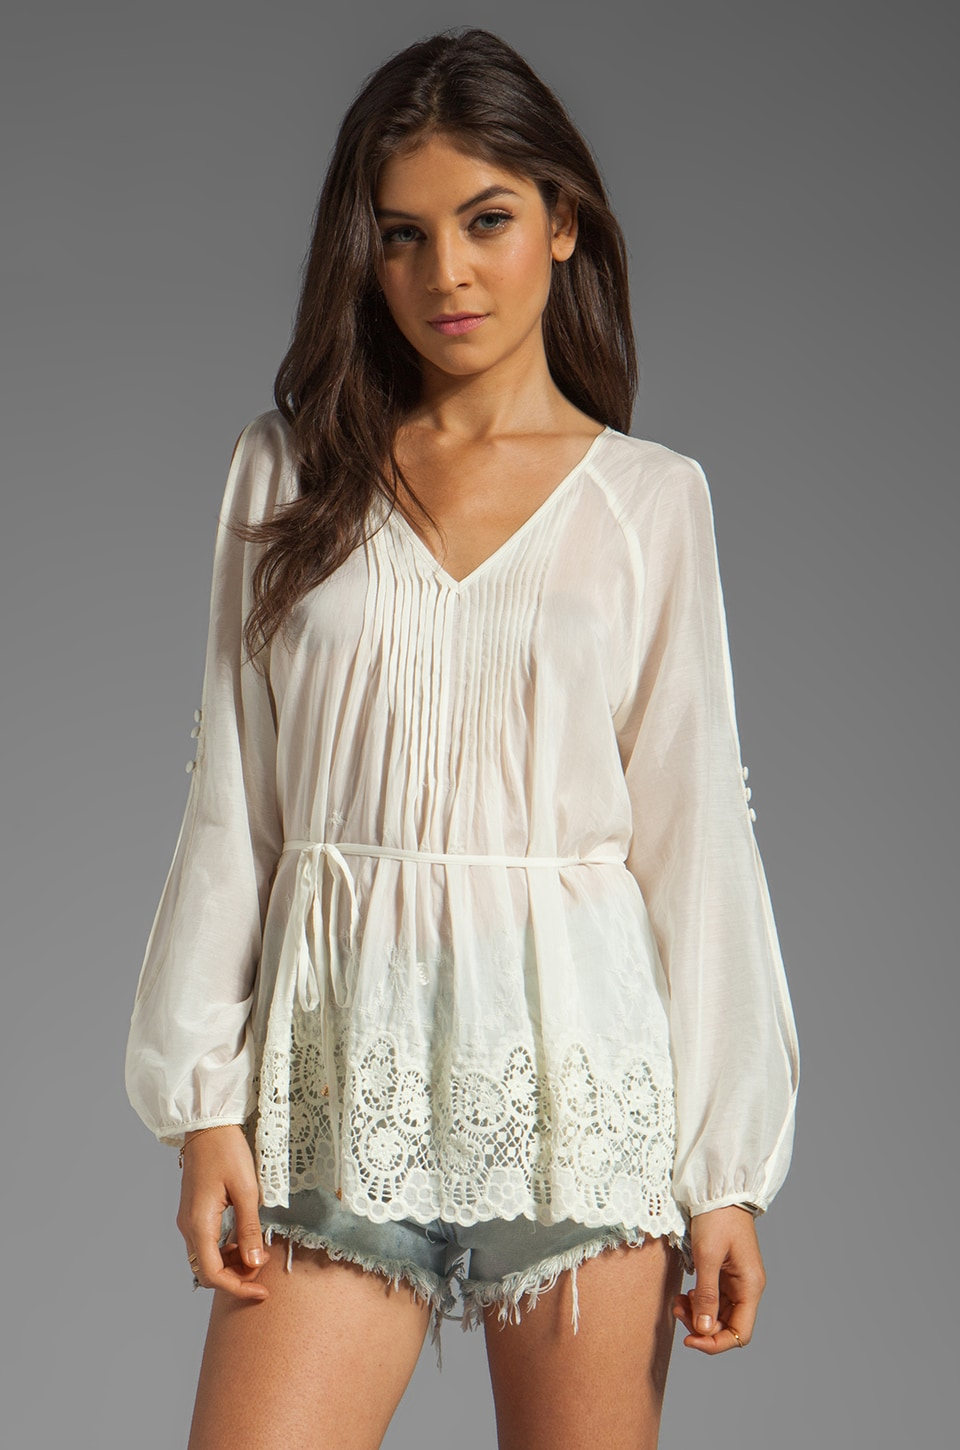 HEARTLOOM Raven Top in Ivory